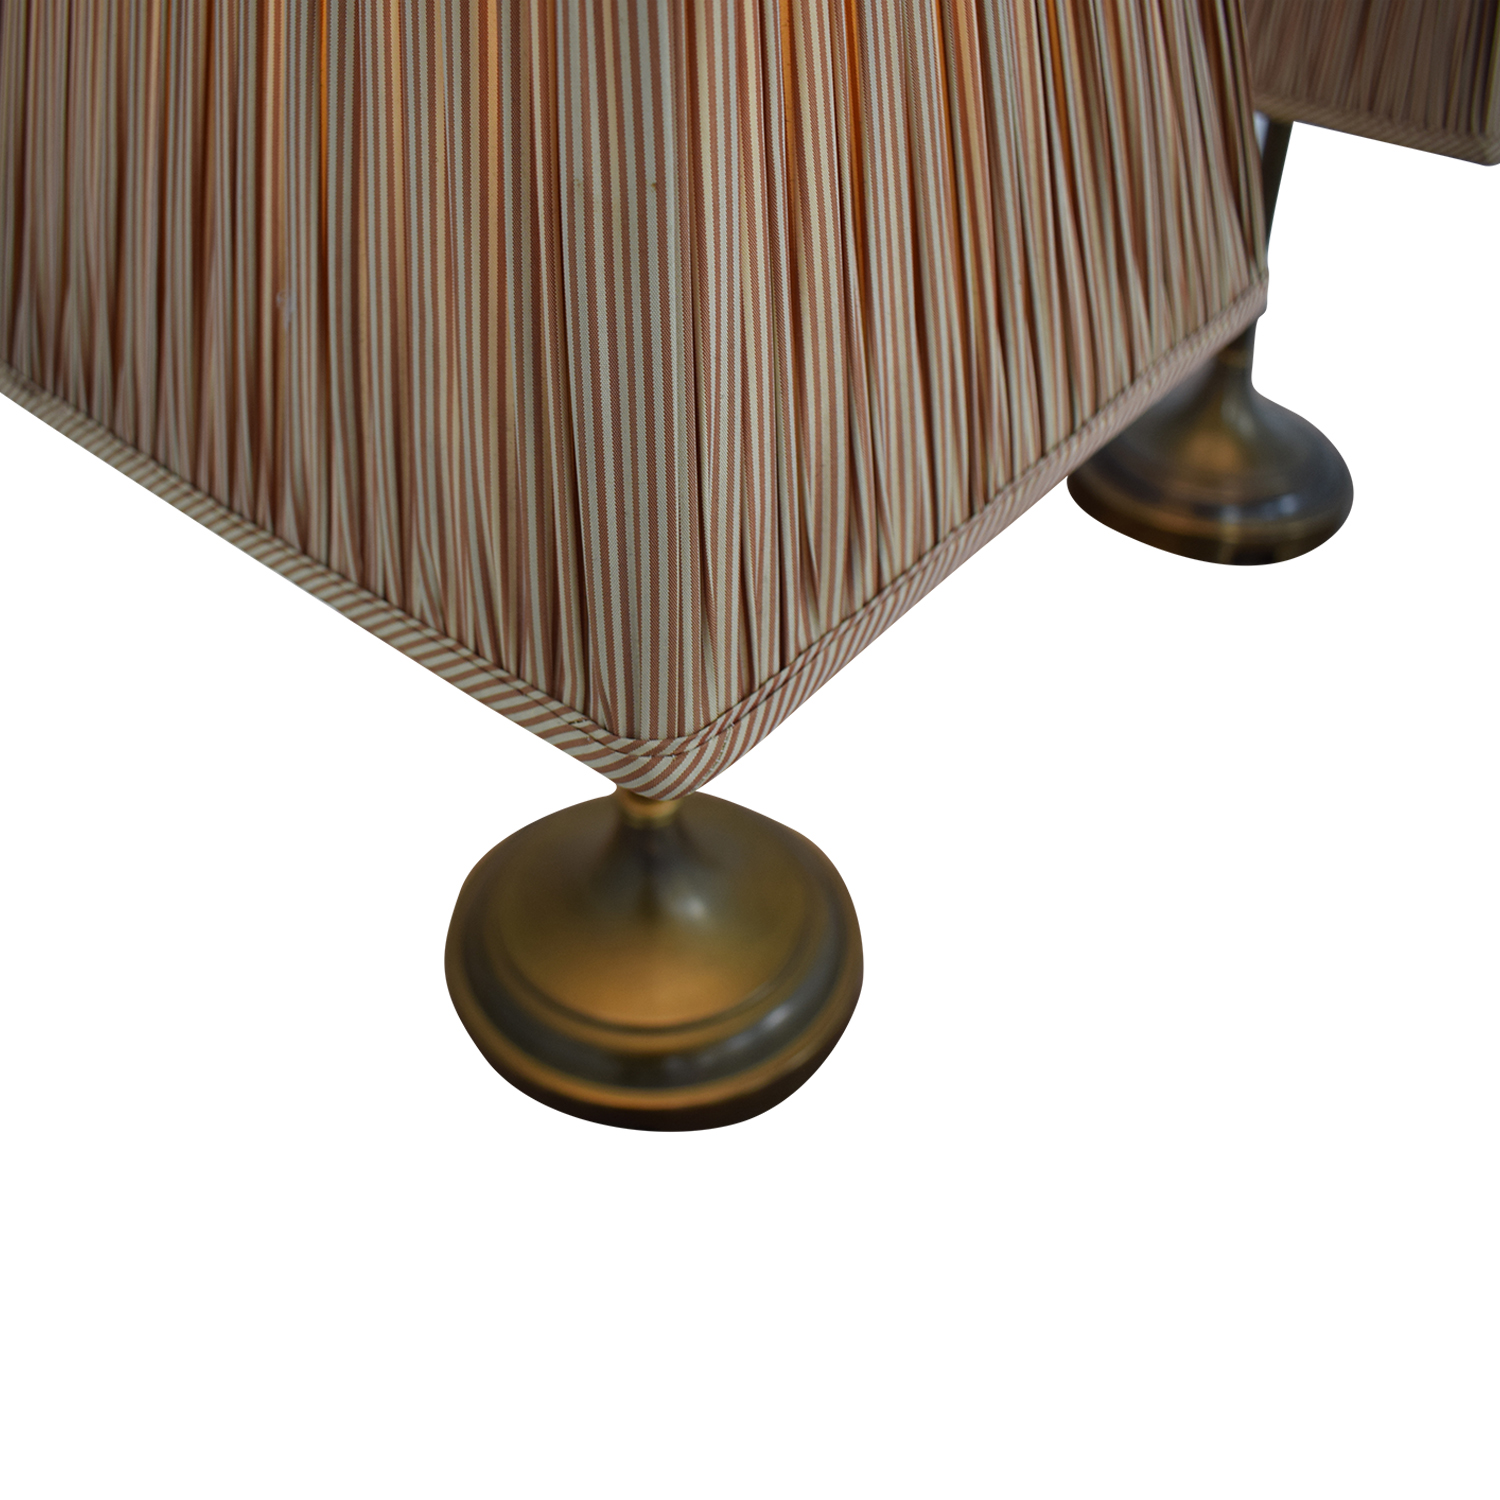 Pottery Barn Pottery Barn Striped Shade Brass Lamps for sale